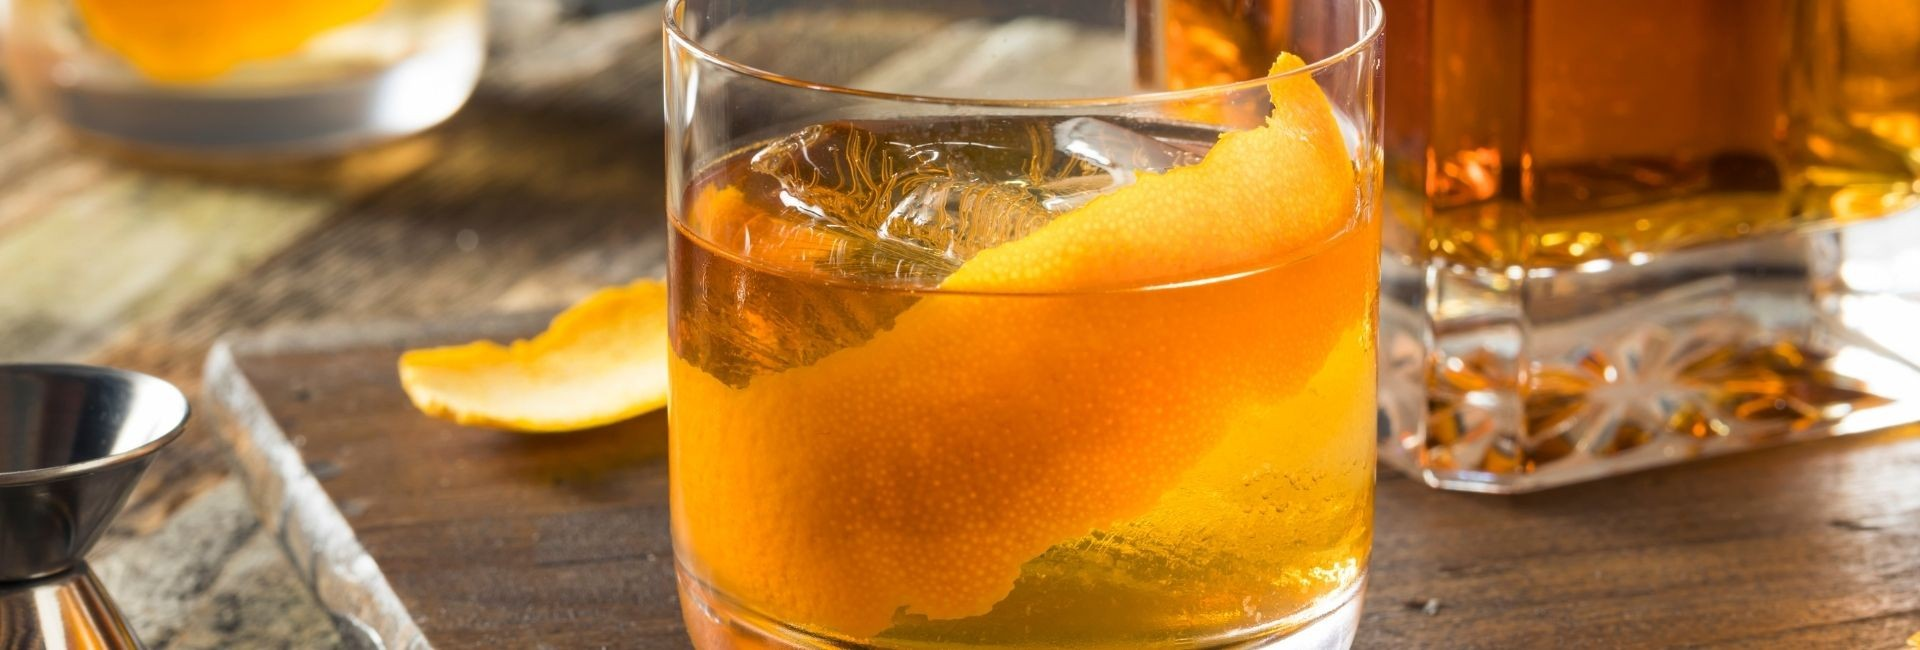 How to drink bourbon?